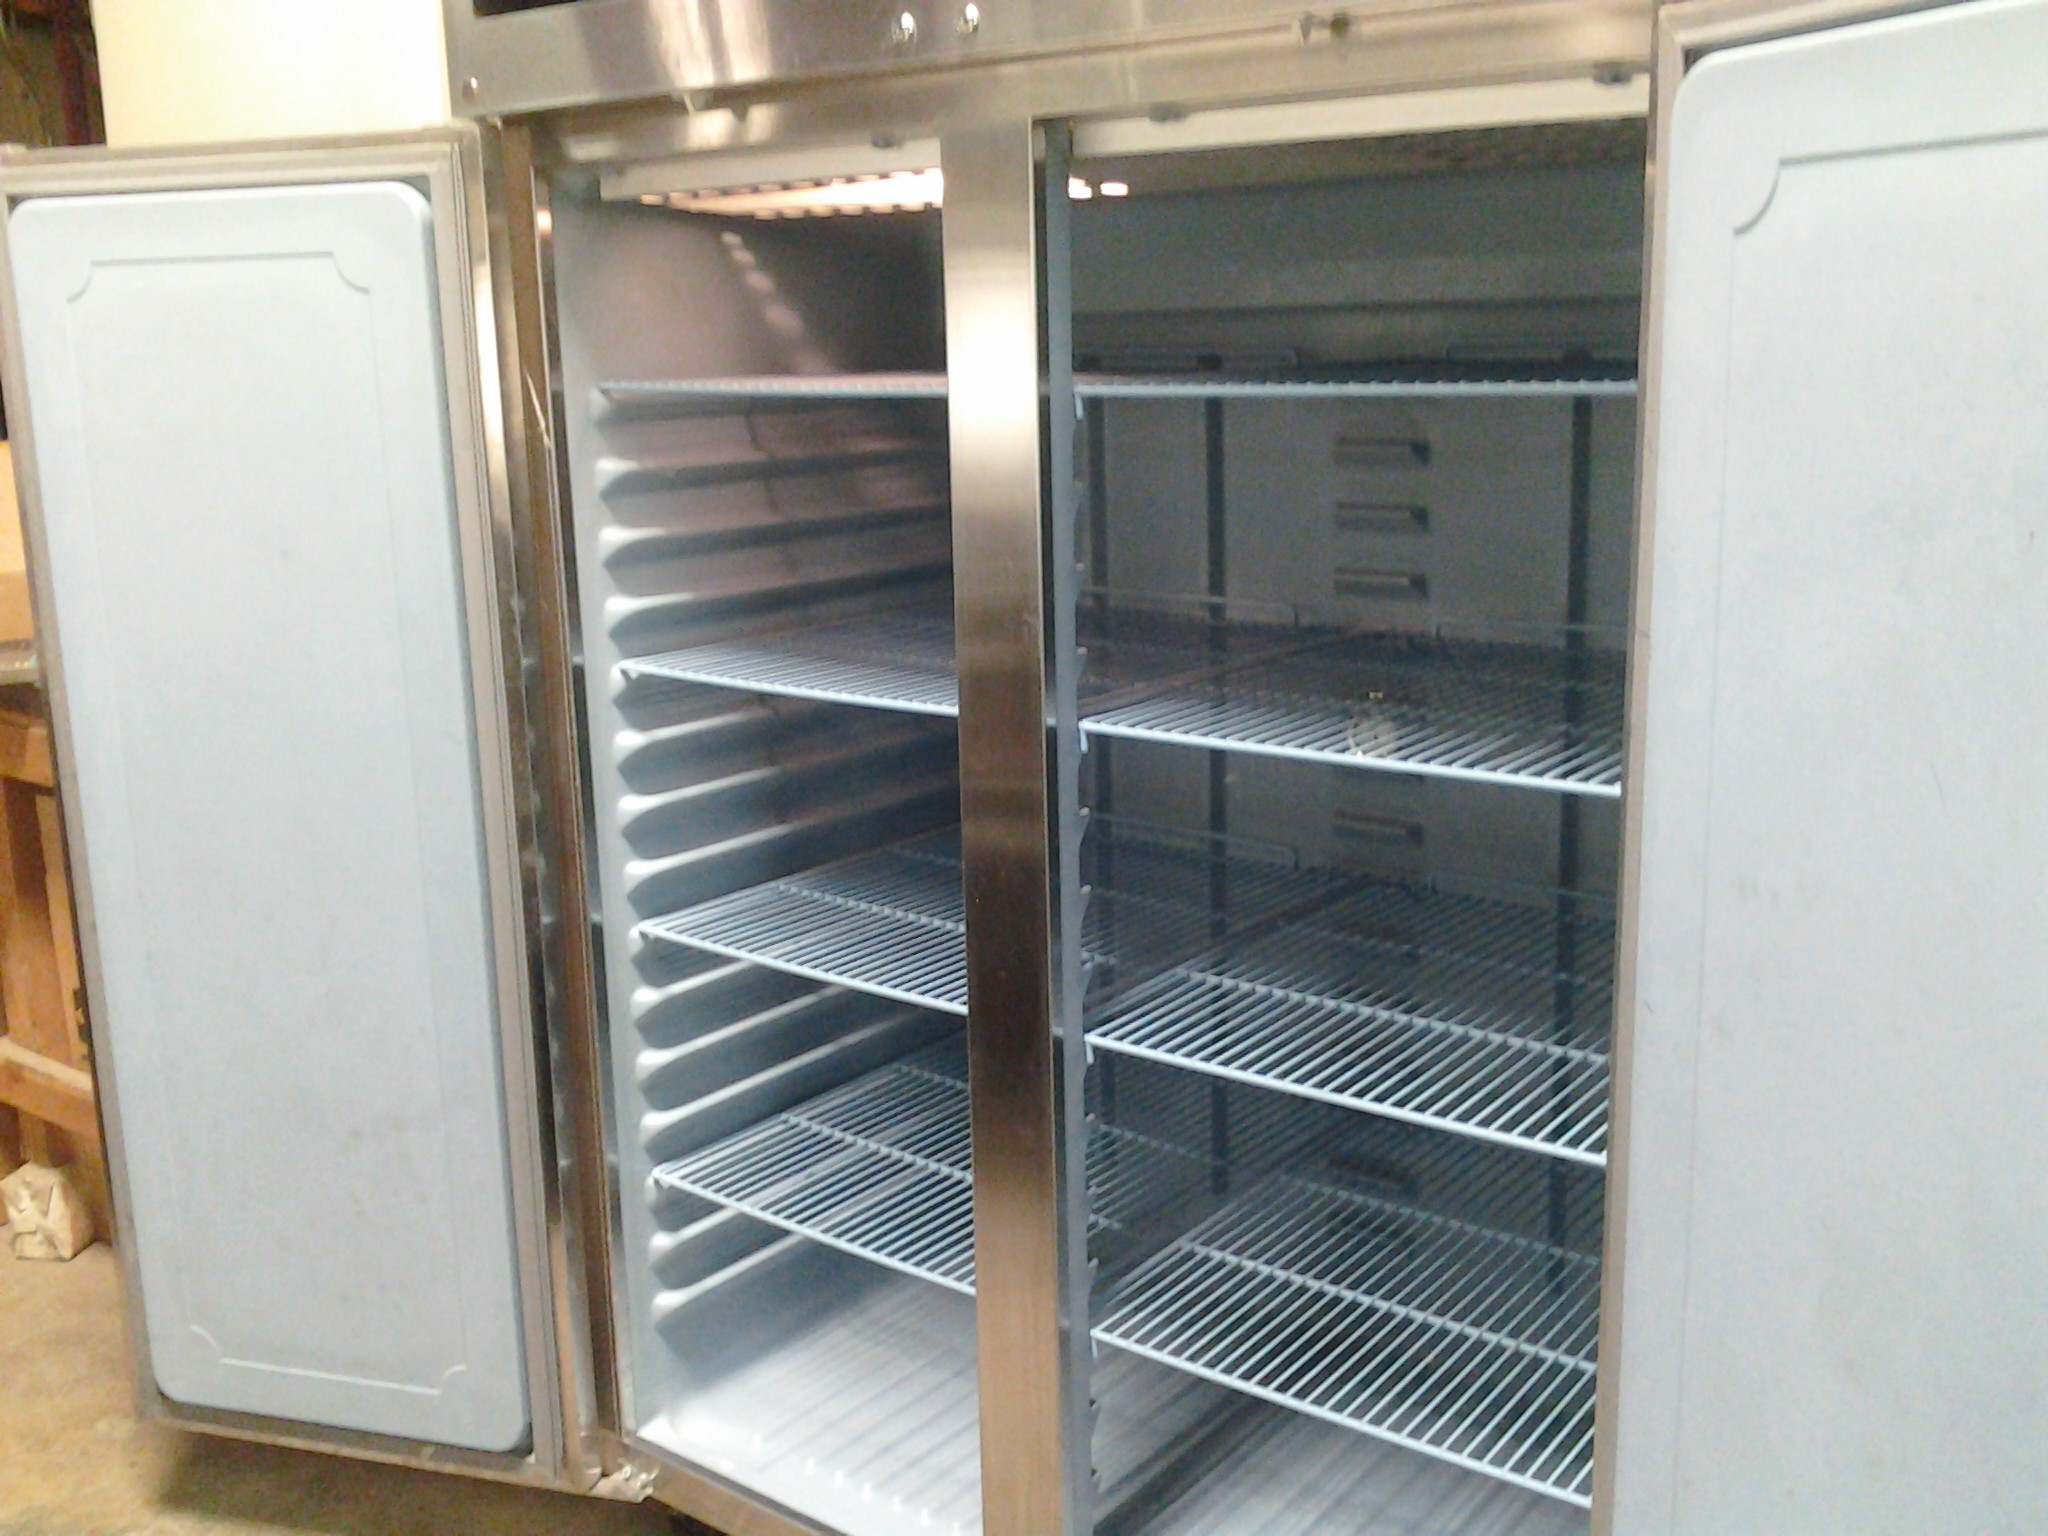 Spokane Commercial Refrigeration Services Air Control Heating And Wiring Plus Electrical For All The Above